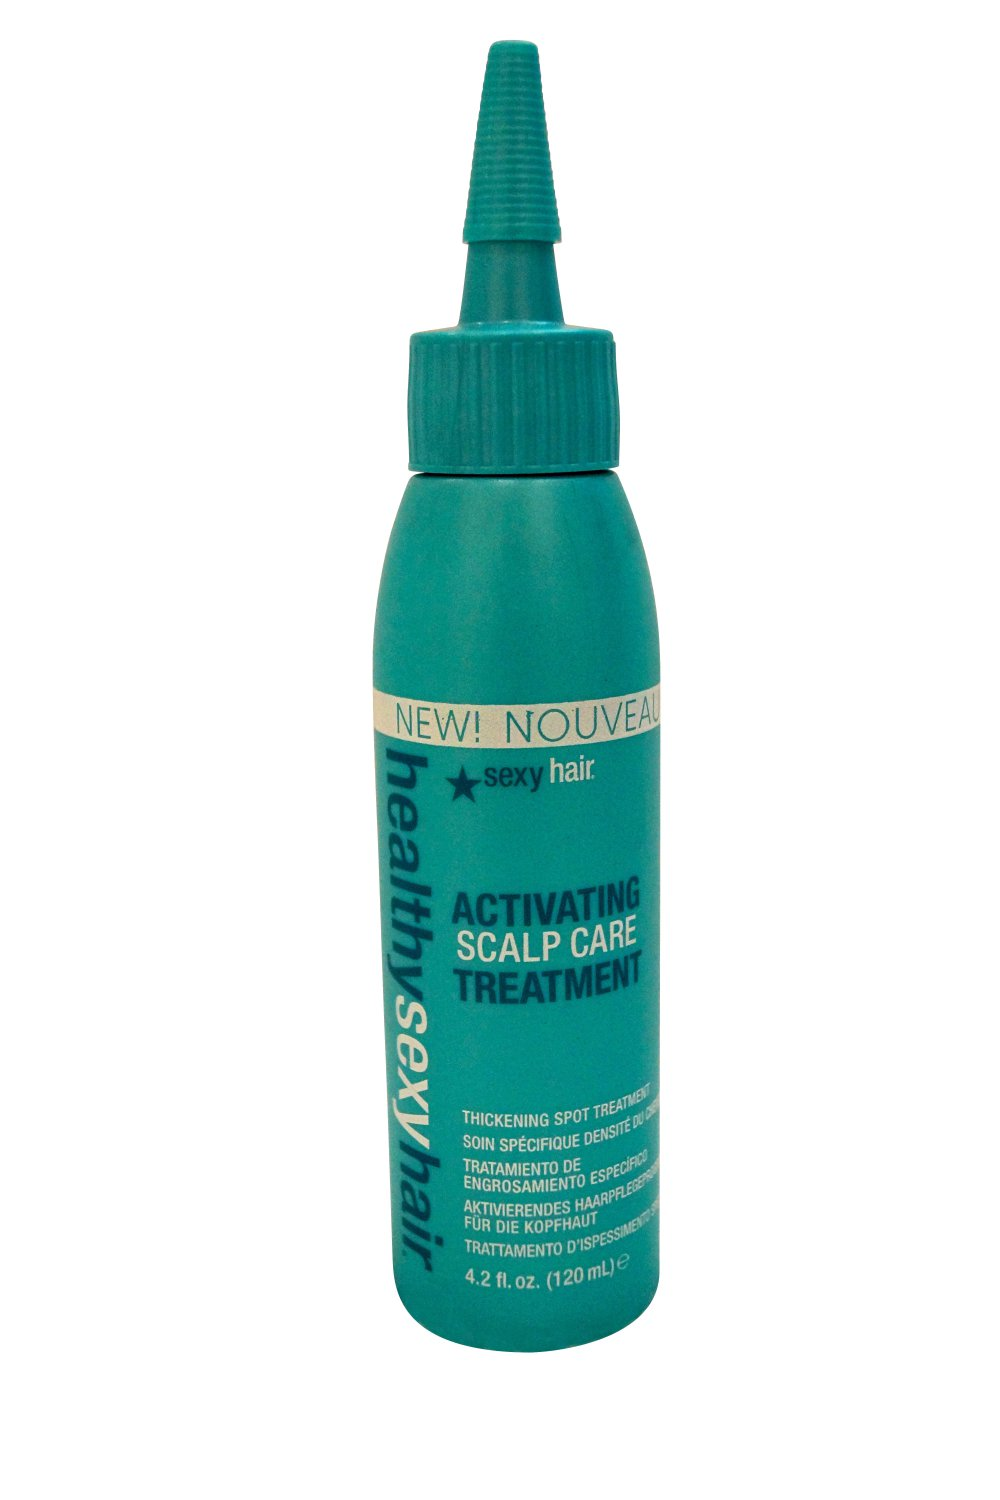 Healthy Sexy Hair Activating Scalp Care Treatment 4.2 oz